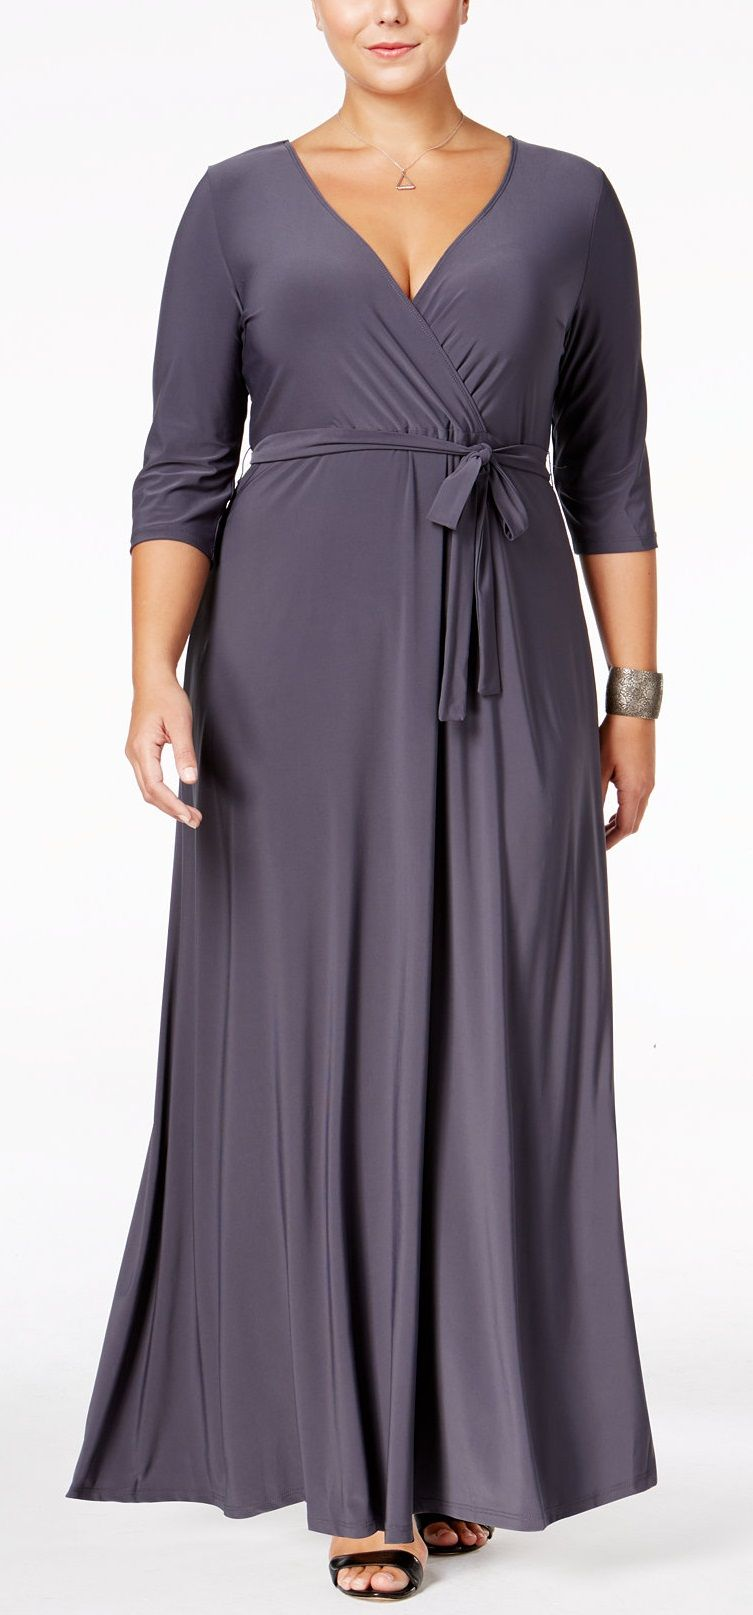 Plus Size Faux-Wrap Maxi Dress | Plus Size Fashion | Pinterest ...